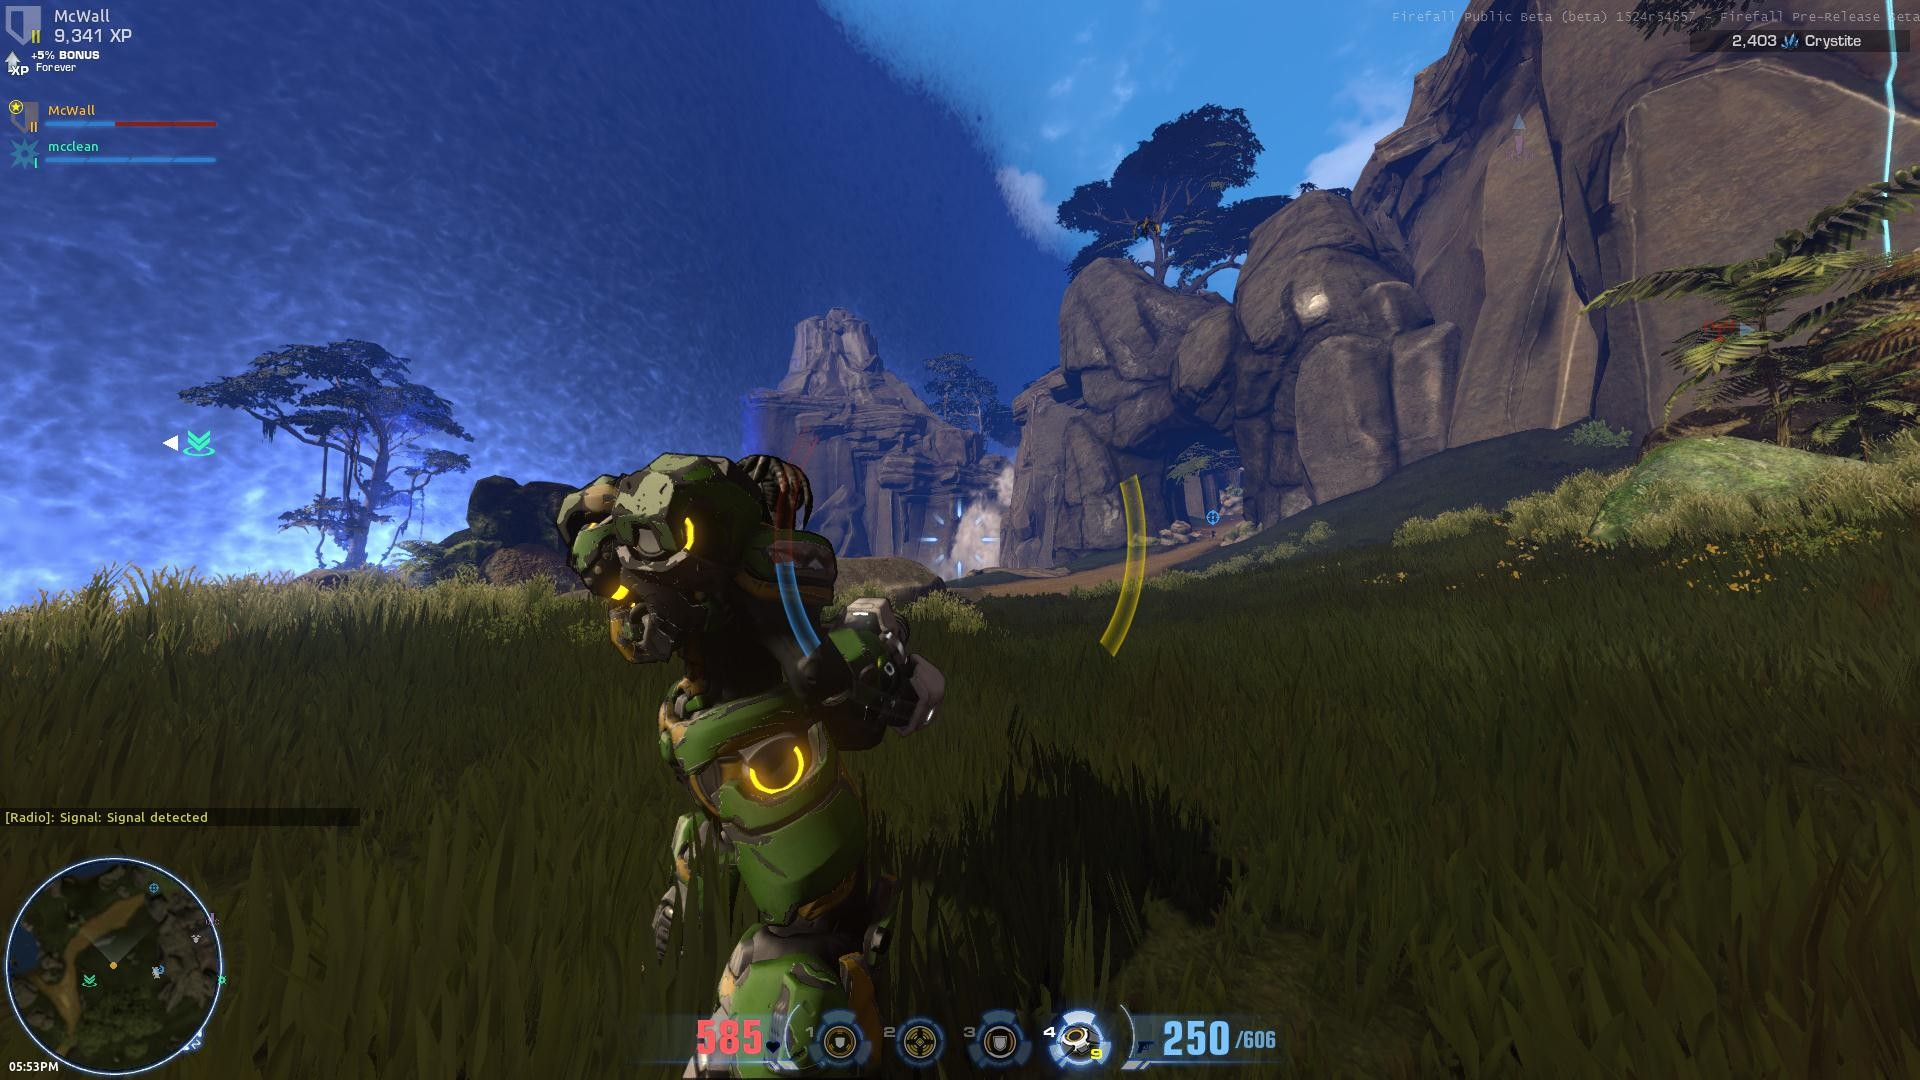 My first Firefall experience